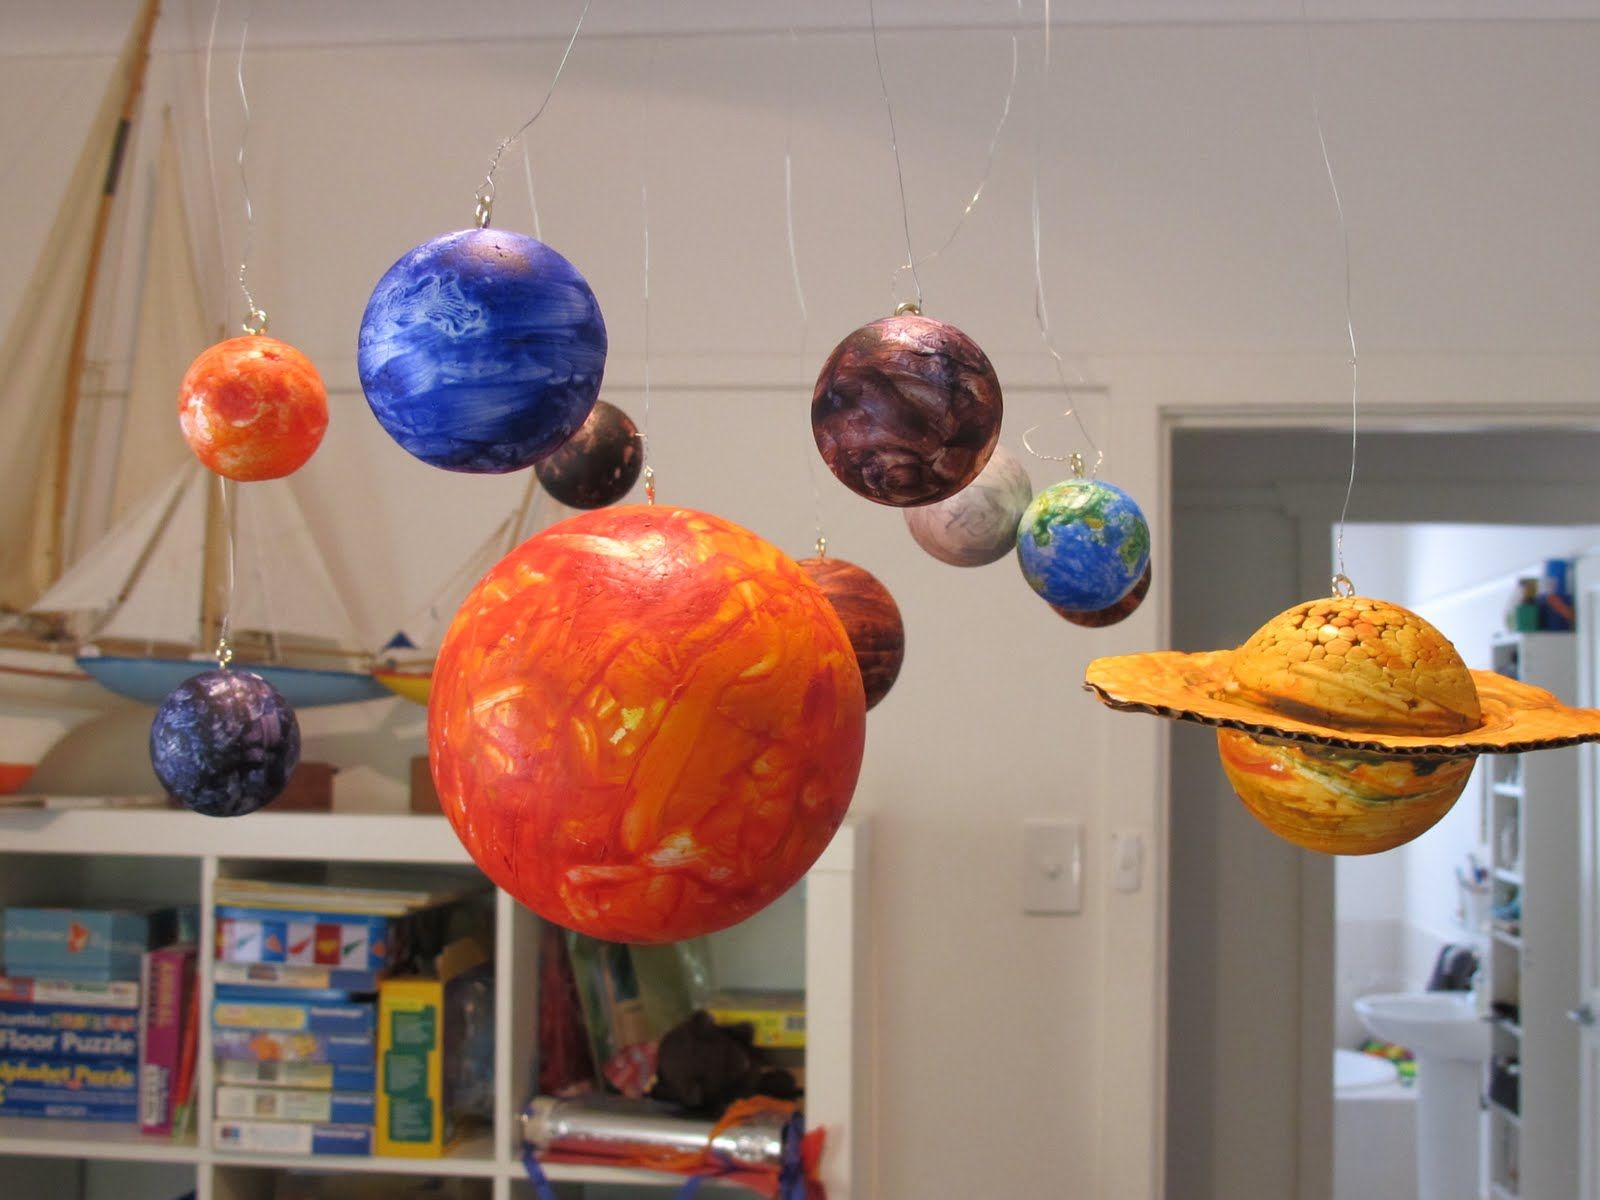 Materials: 10 styrofoam balls (1 very big for the Sun, 2 large for